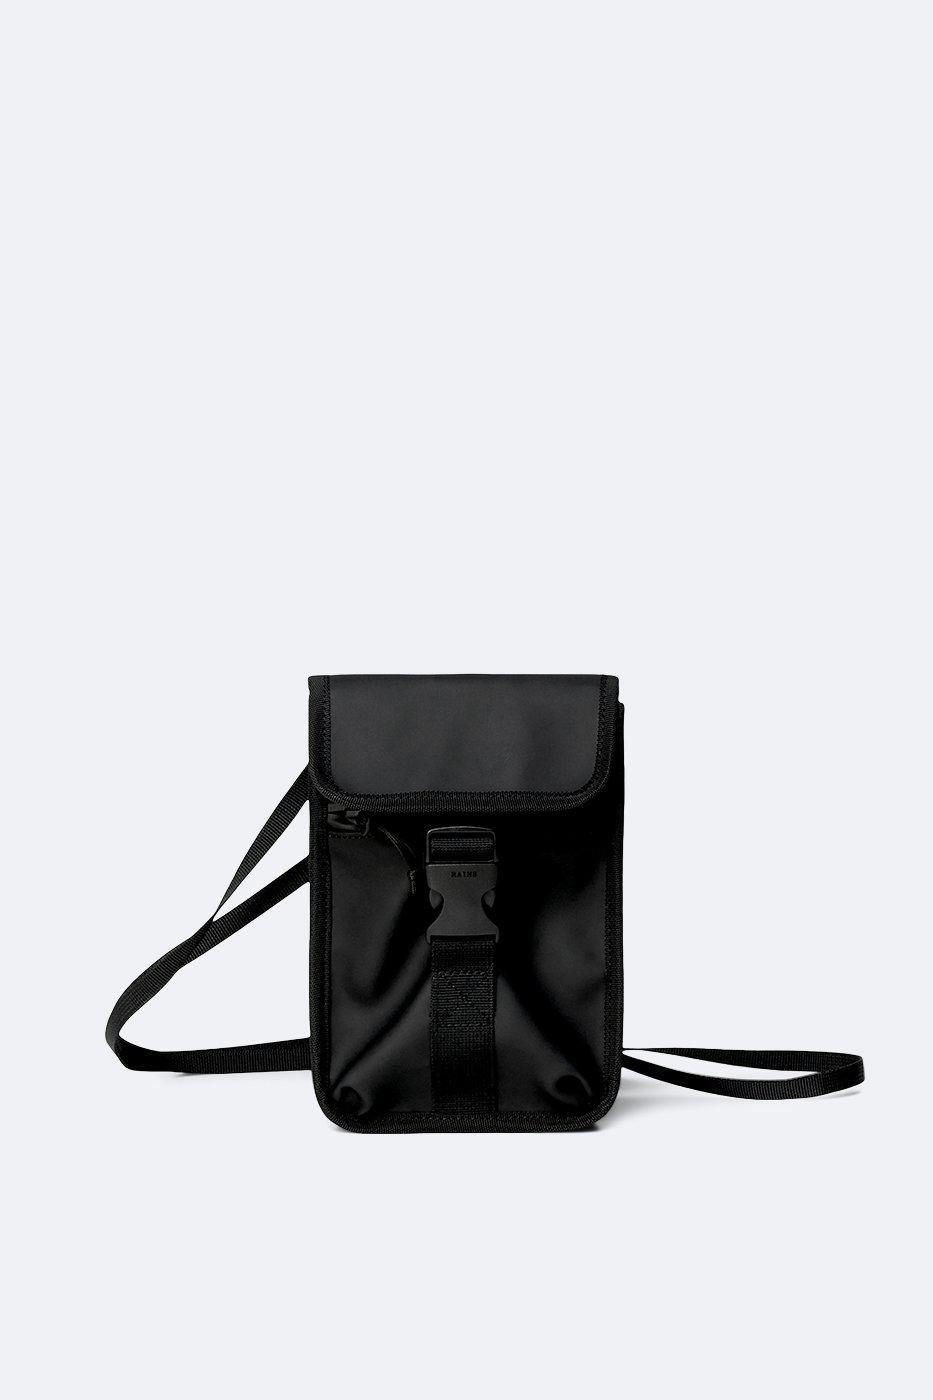 Buckle Money Pouch